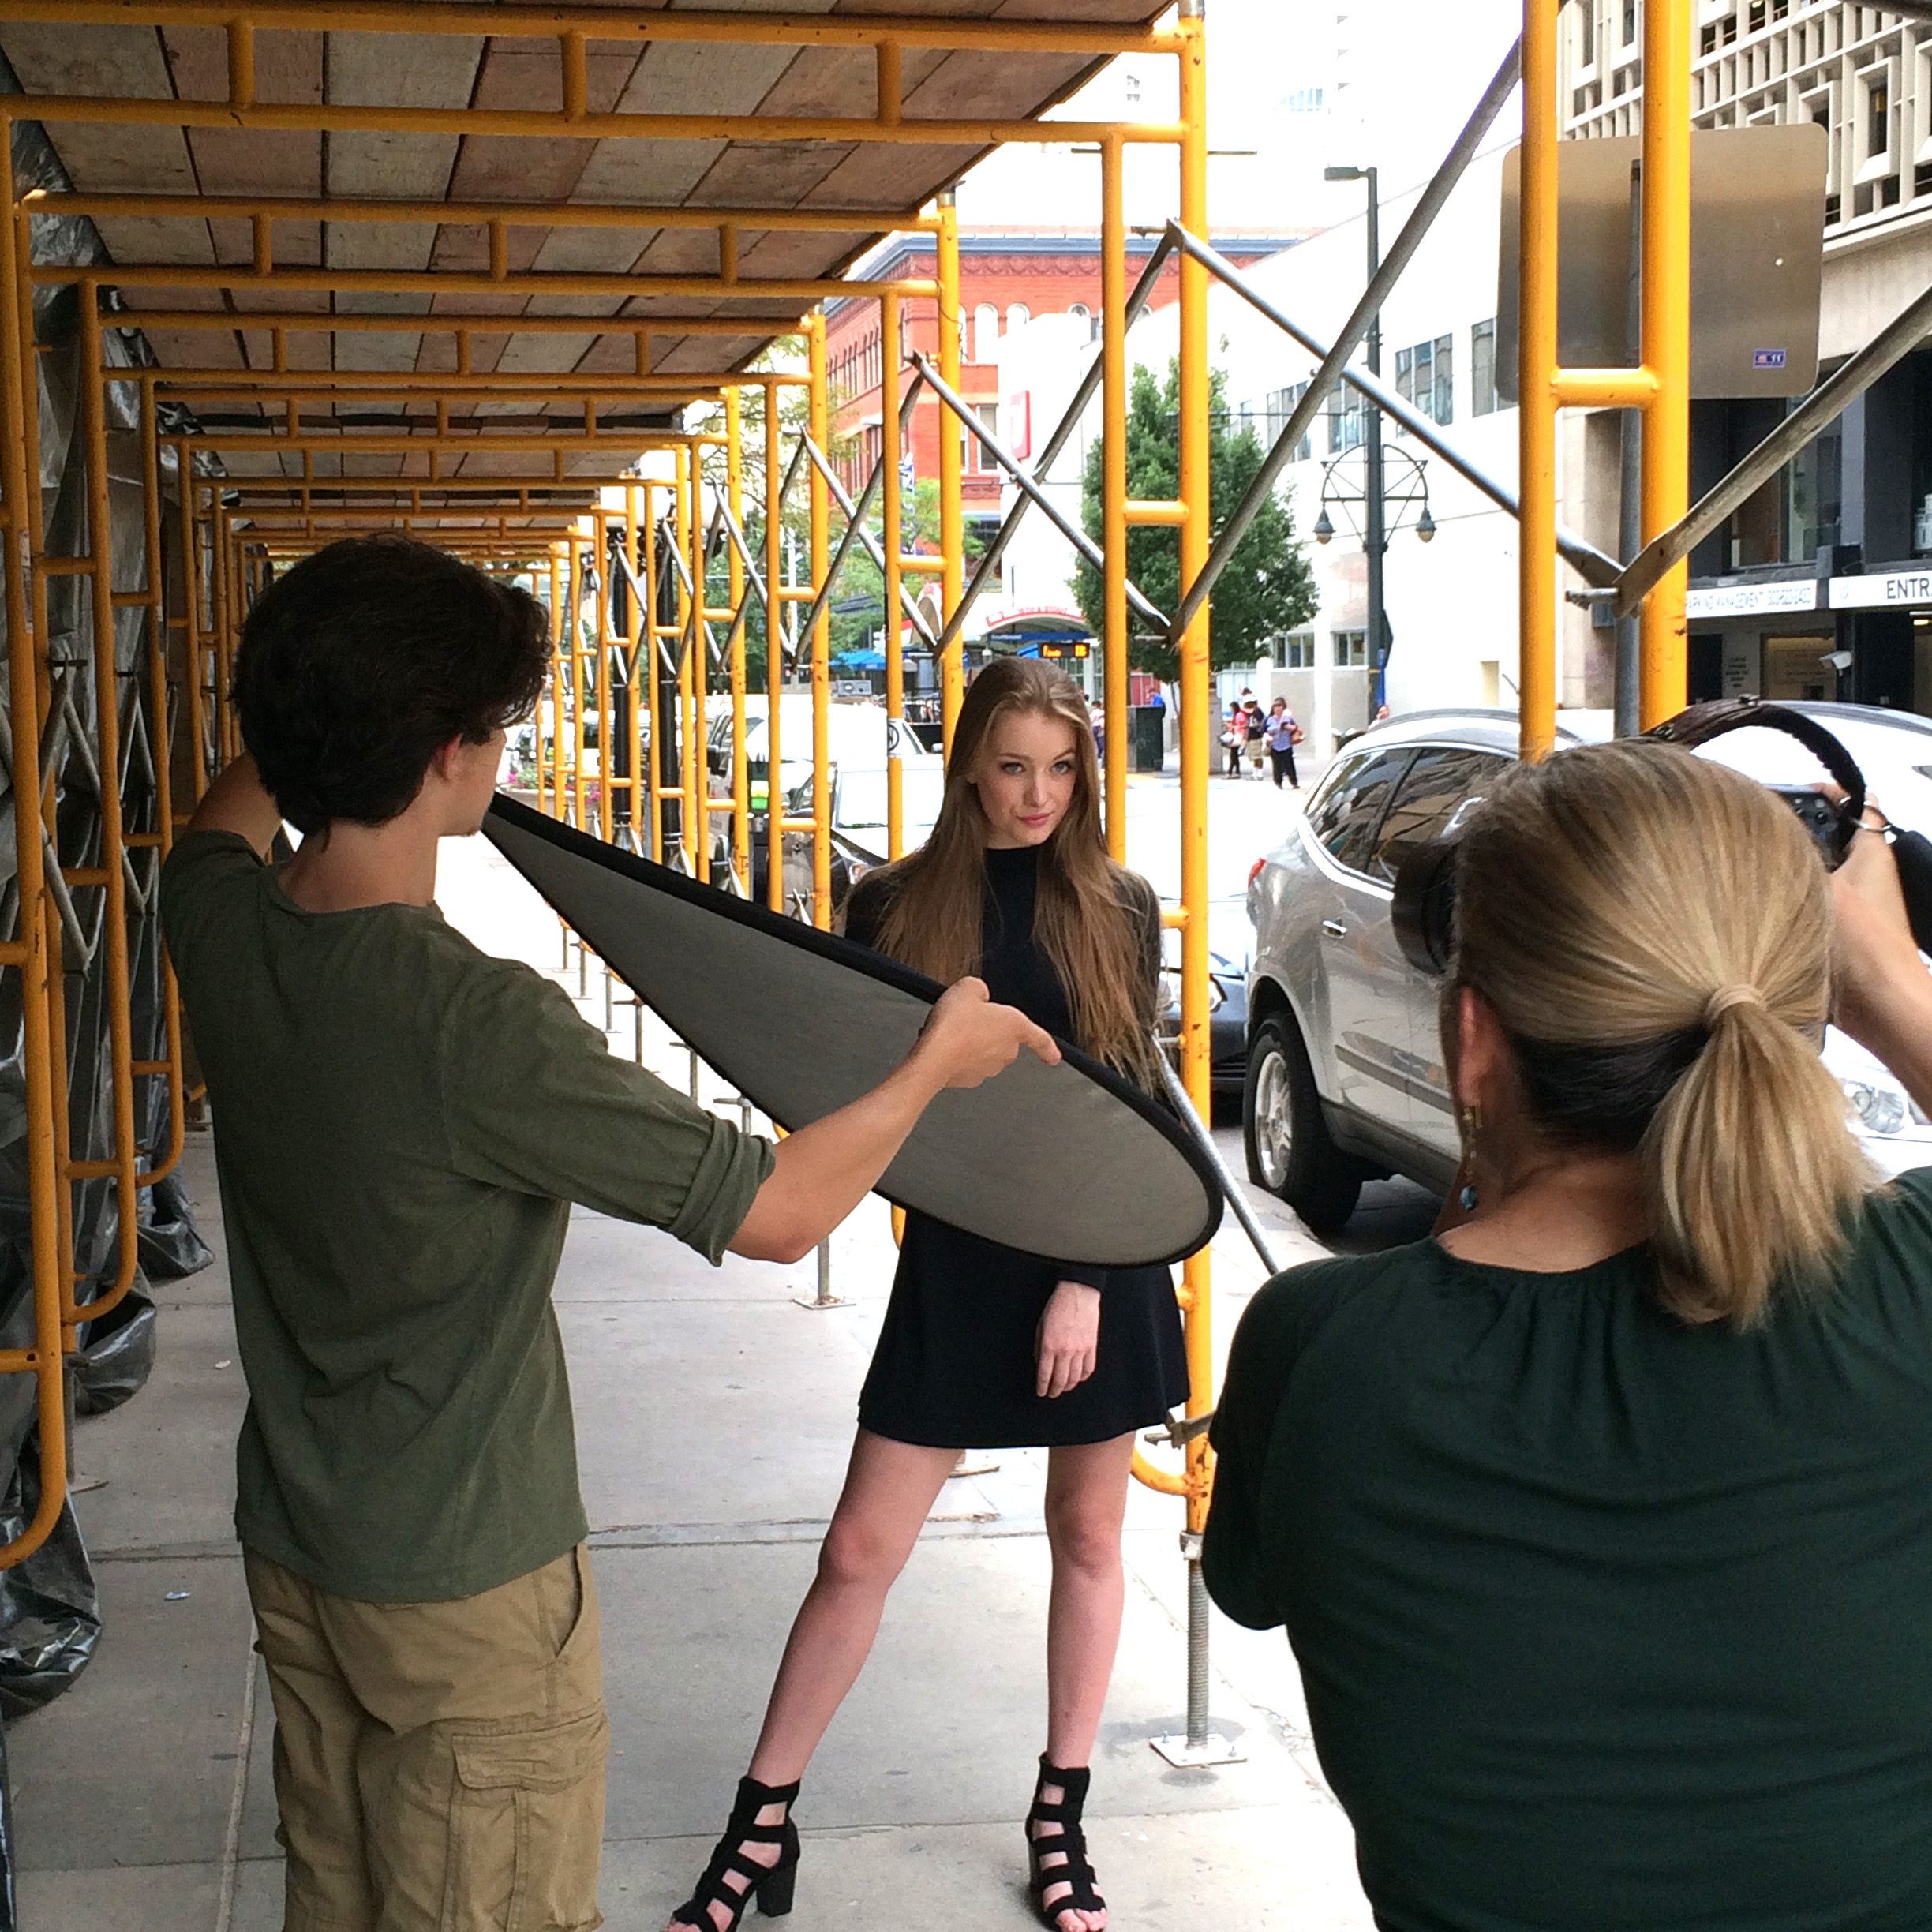 behind-the-scenes-photographer-merritt-portrait-urban.jpg